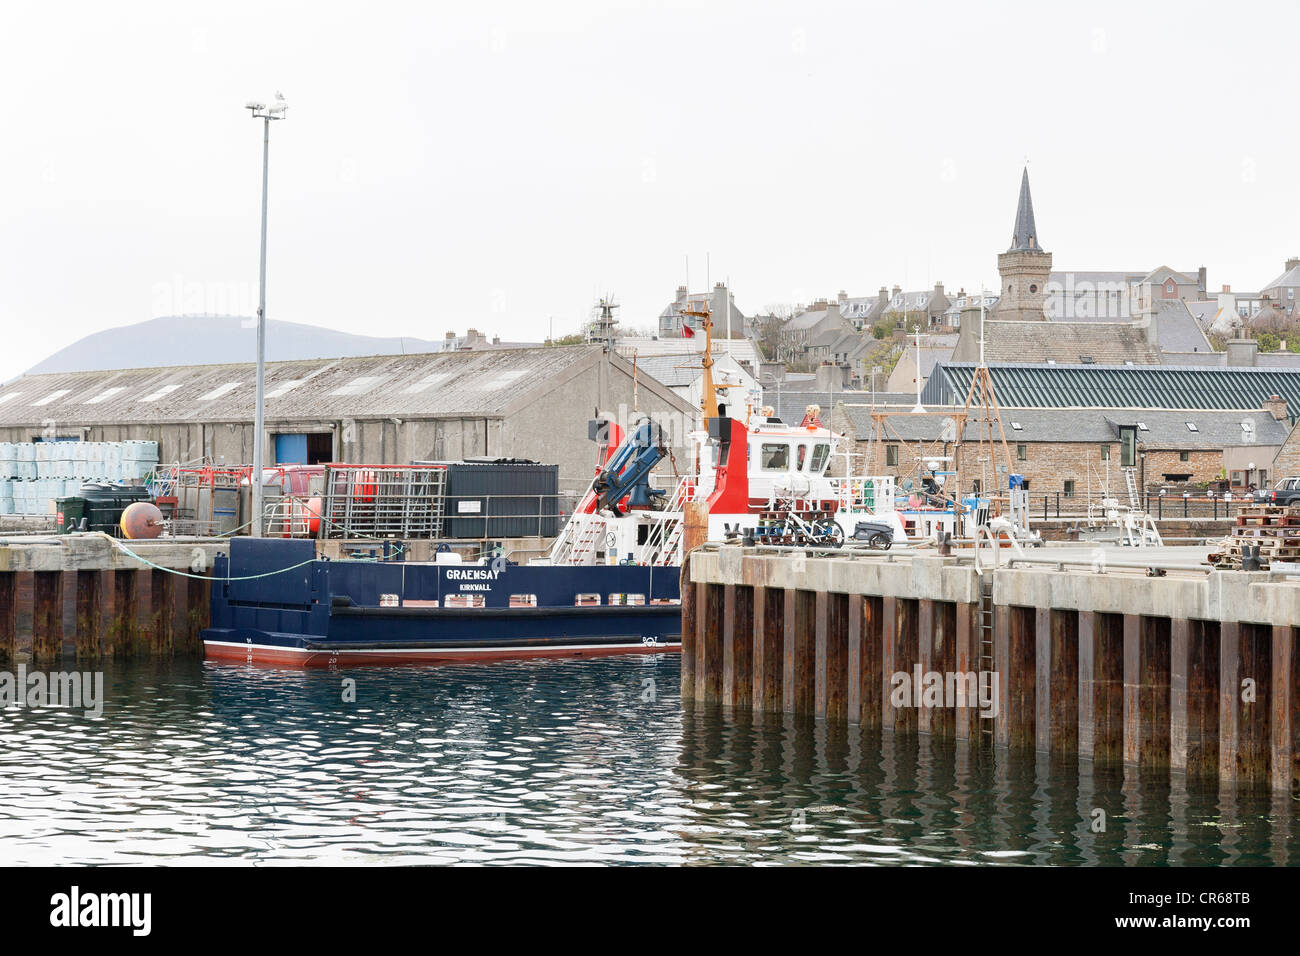 The harbour at Stromness on the Orkney Isles - Stock Image